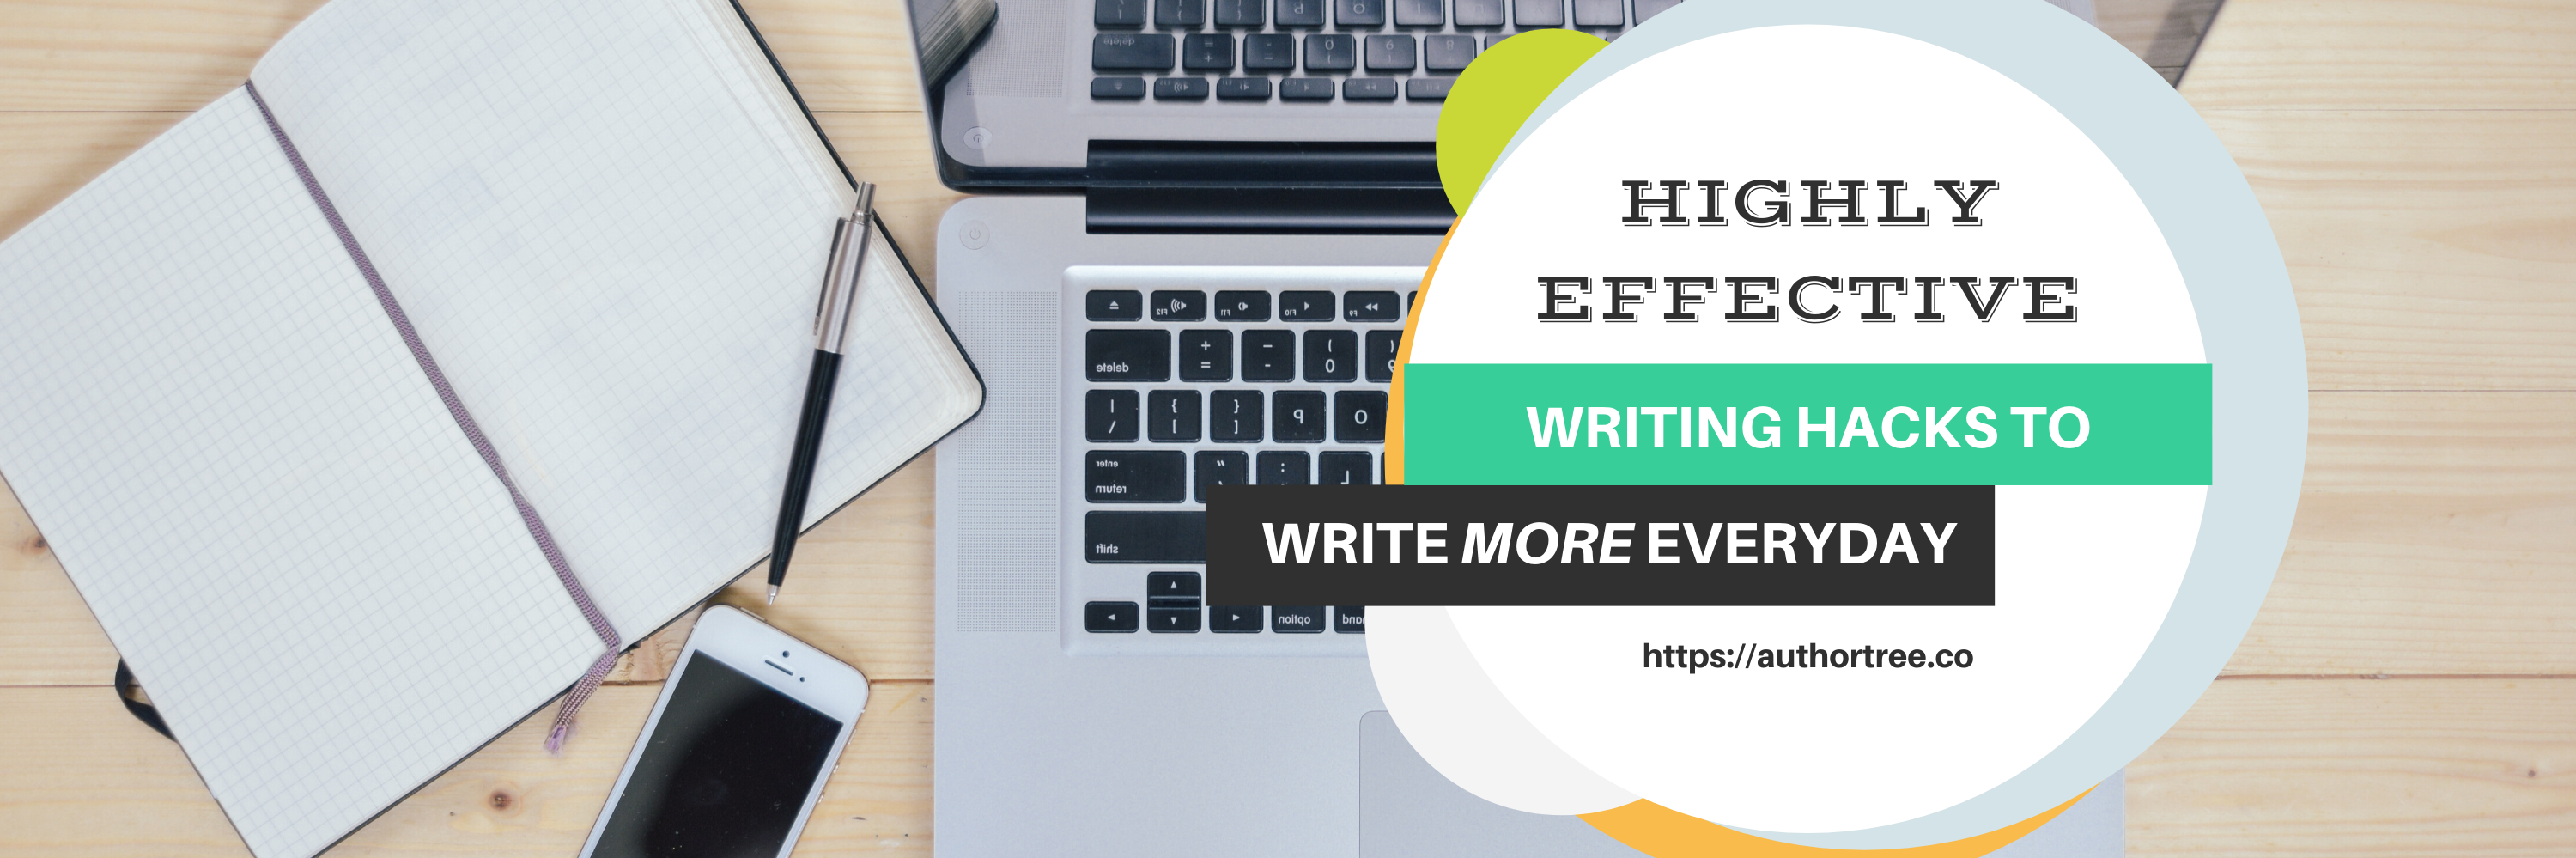 Highly Effective Writing Hacks to Write More Everyday Blog Title